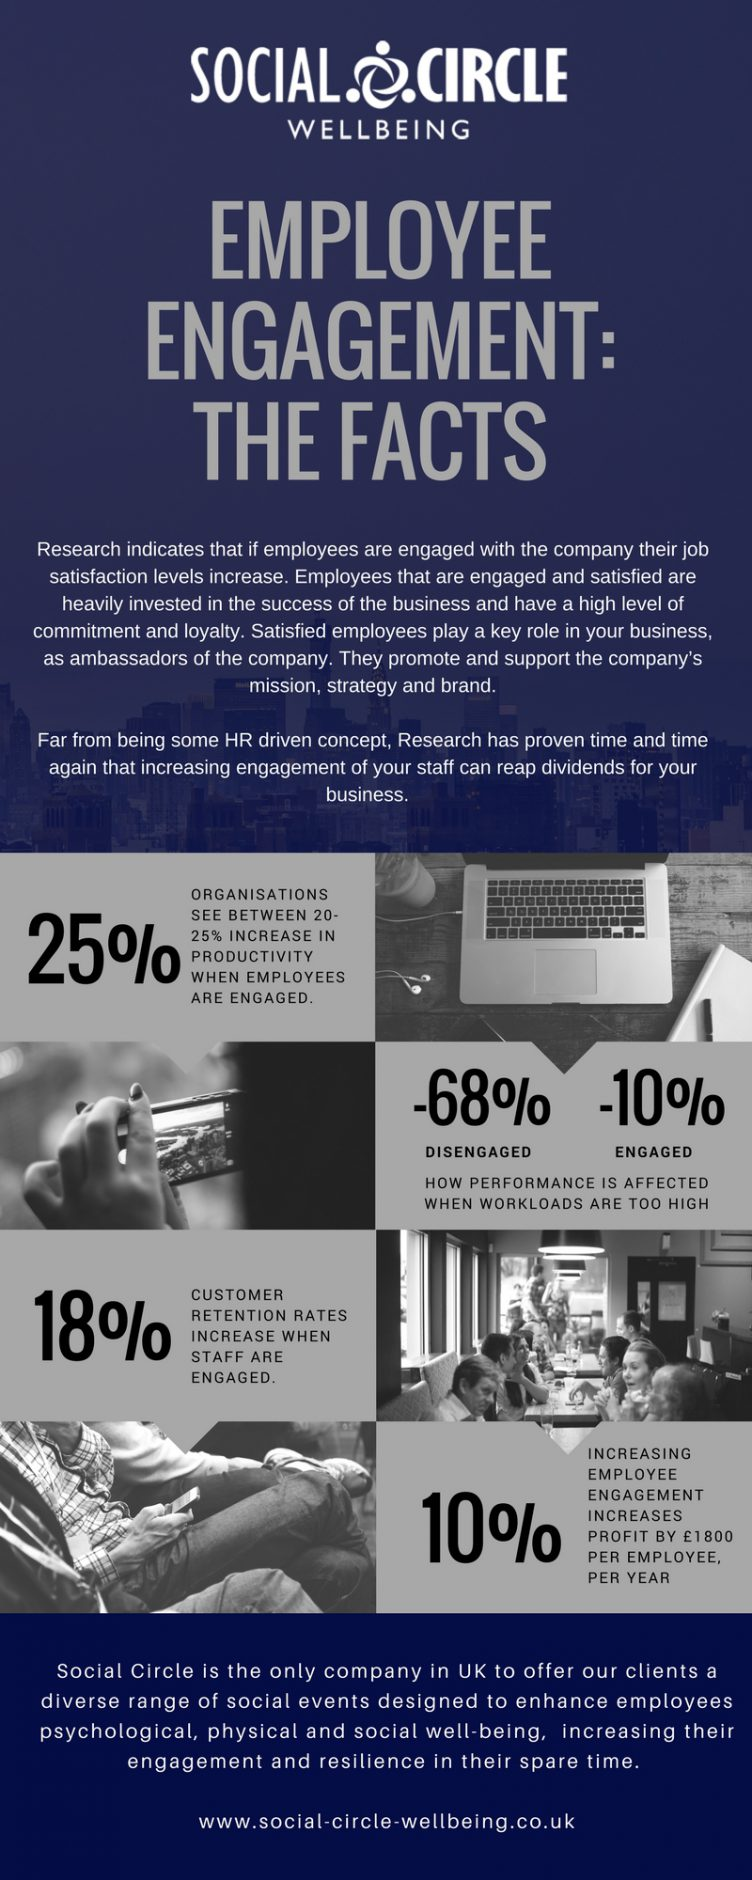 Infographic. Employee Engagement: The Facts